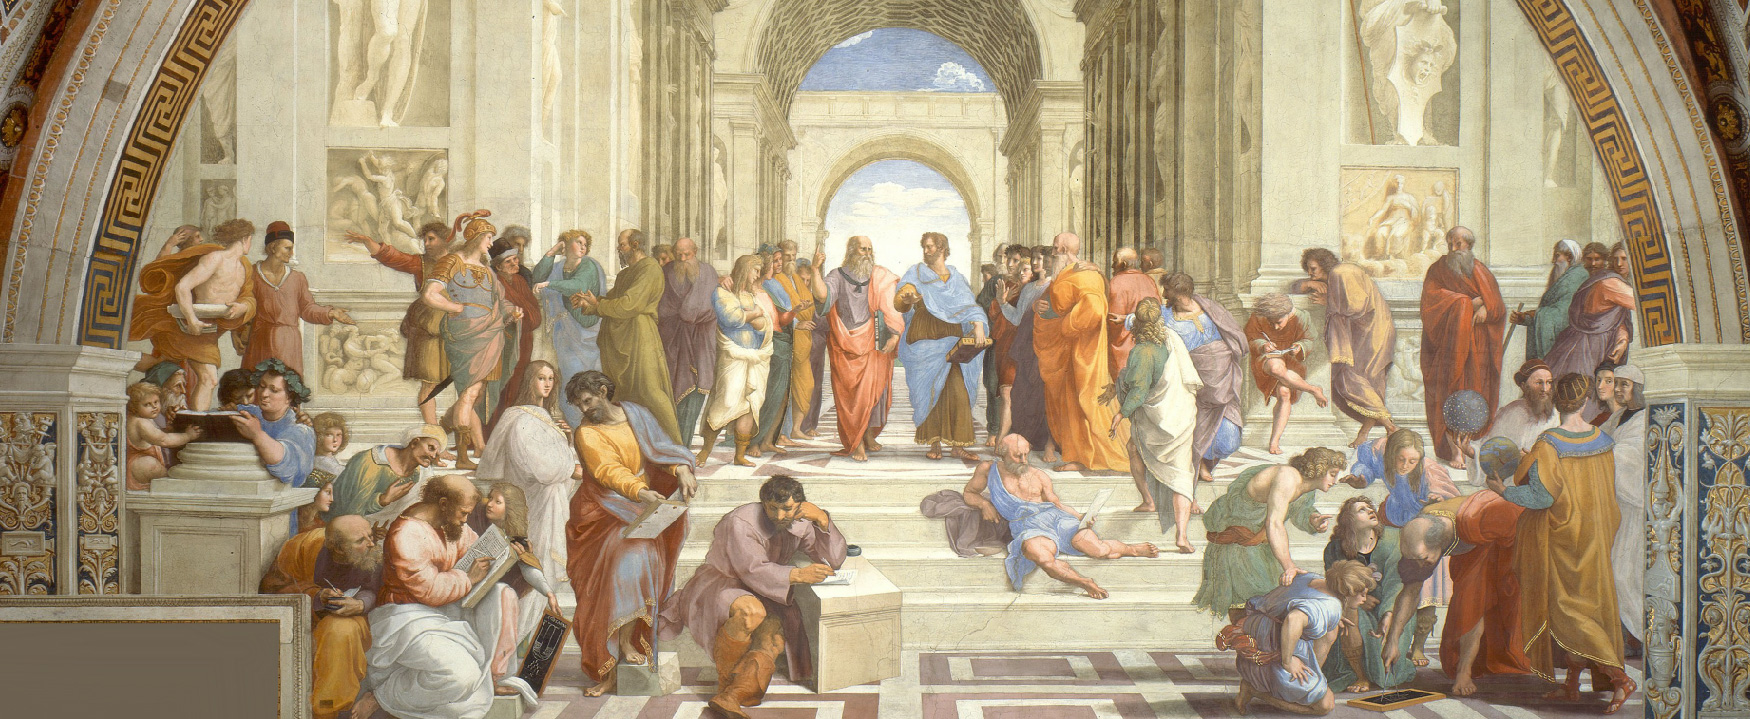 An engraving shows the interior of The School of Athens by Raphael.